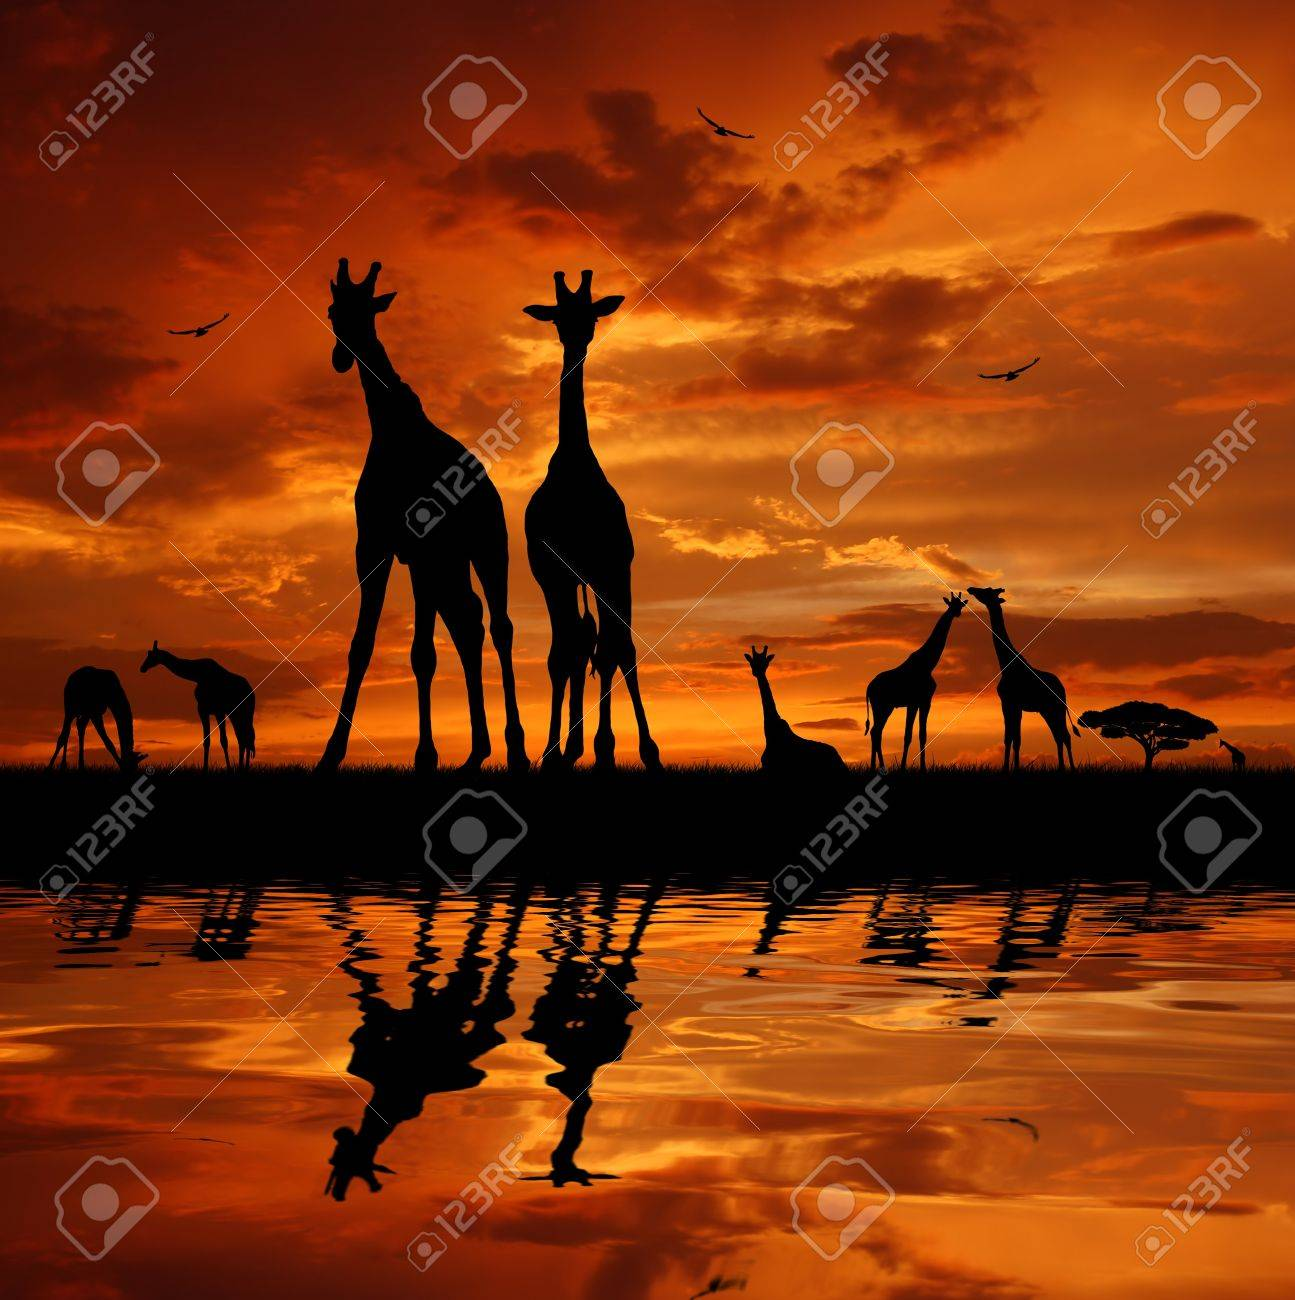 Two giraffes in sunset Stock Photo - 13007103